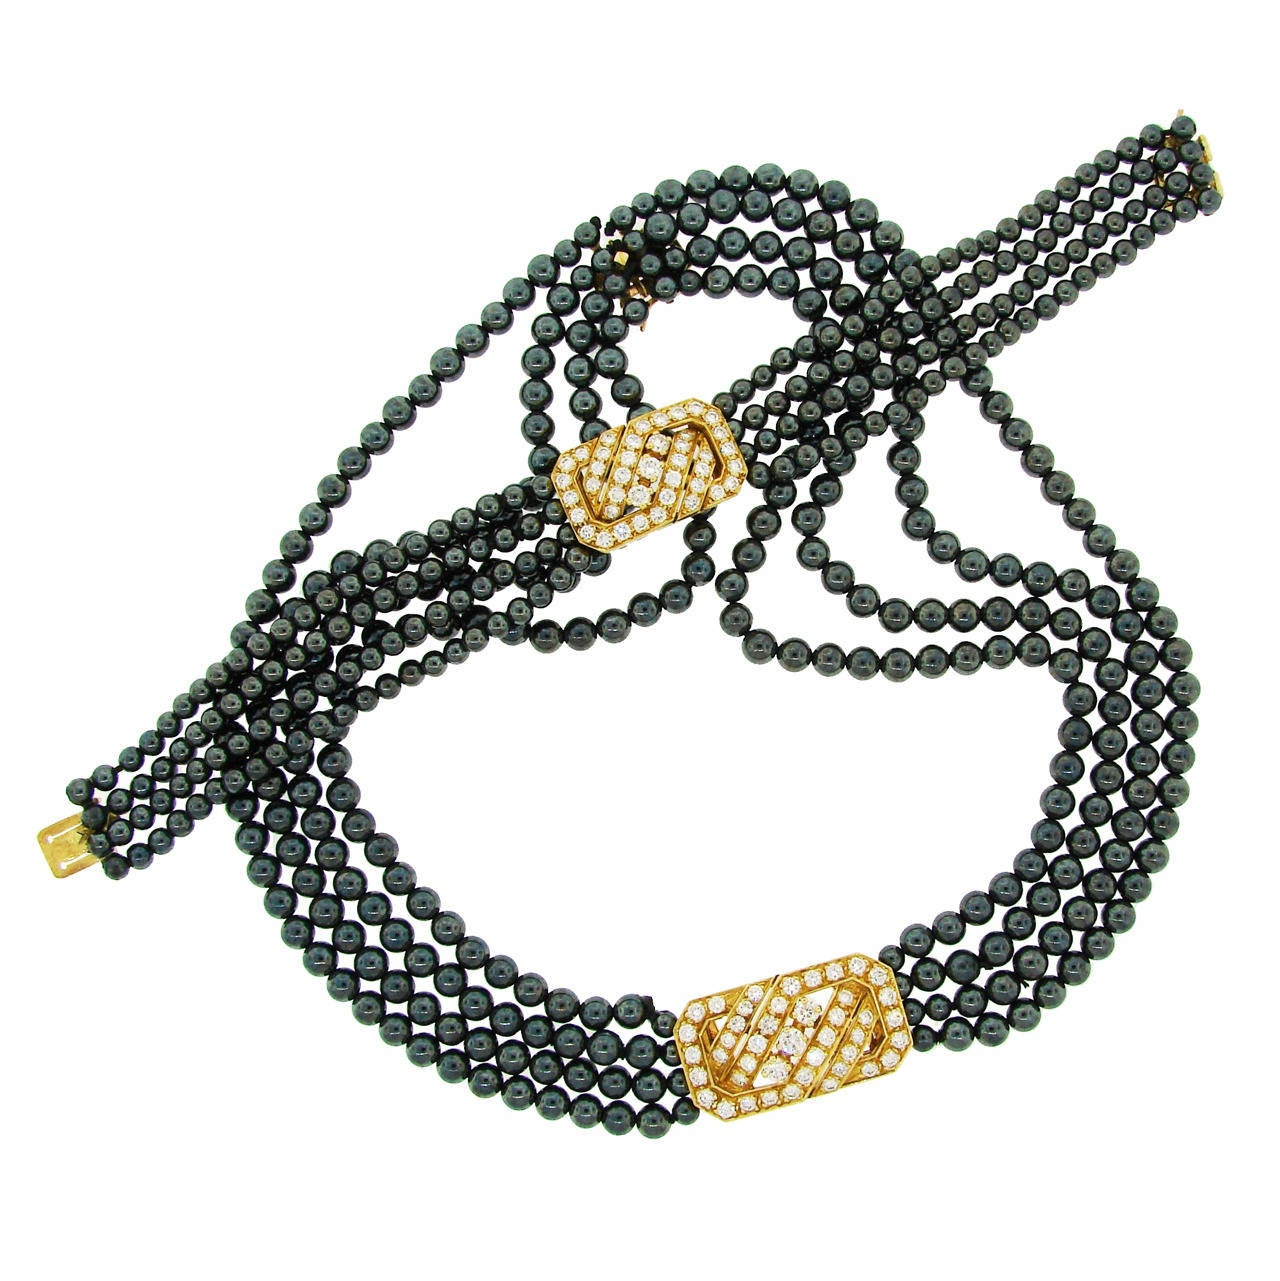 Van Cleef & Arpels Hematite Diamond Gold Necklace and Bracelet Set